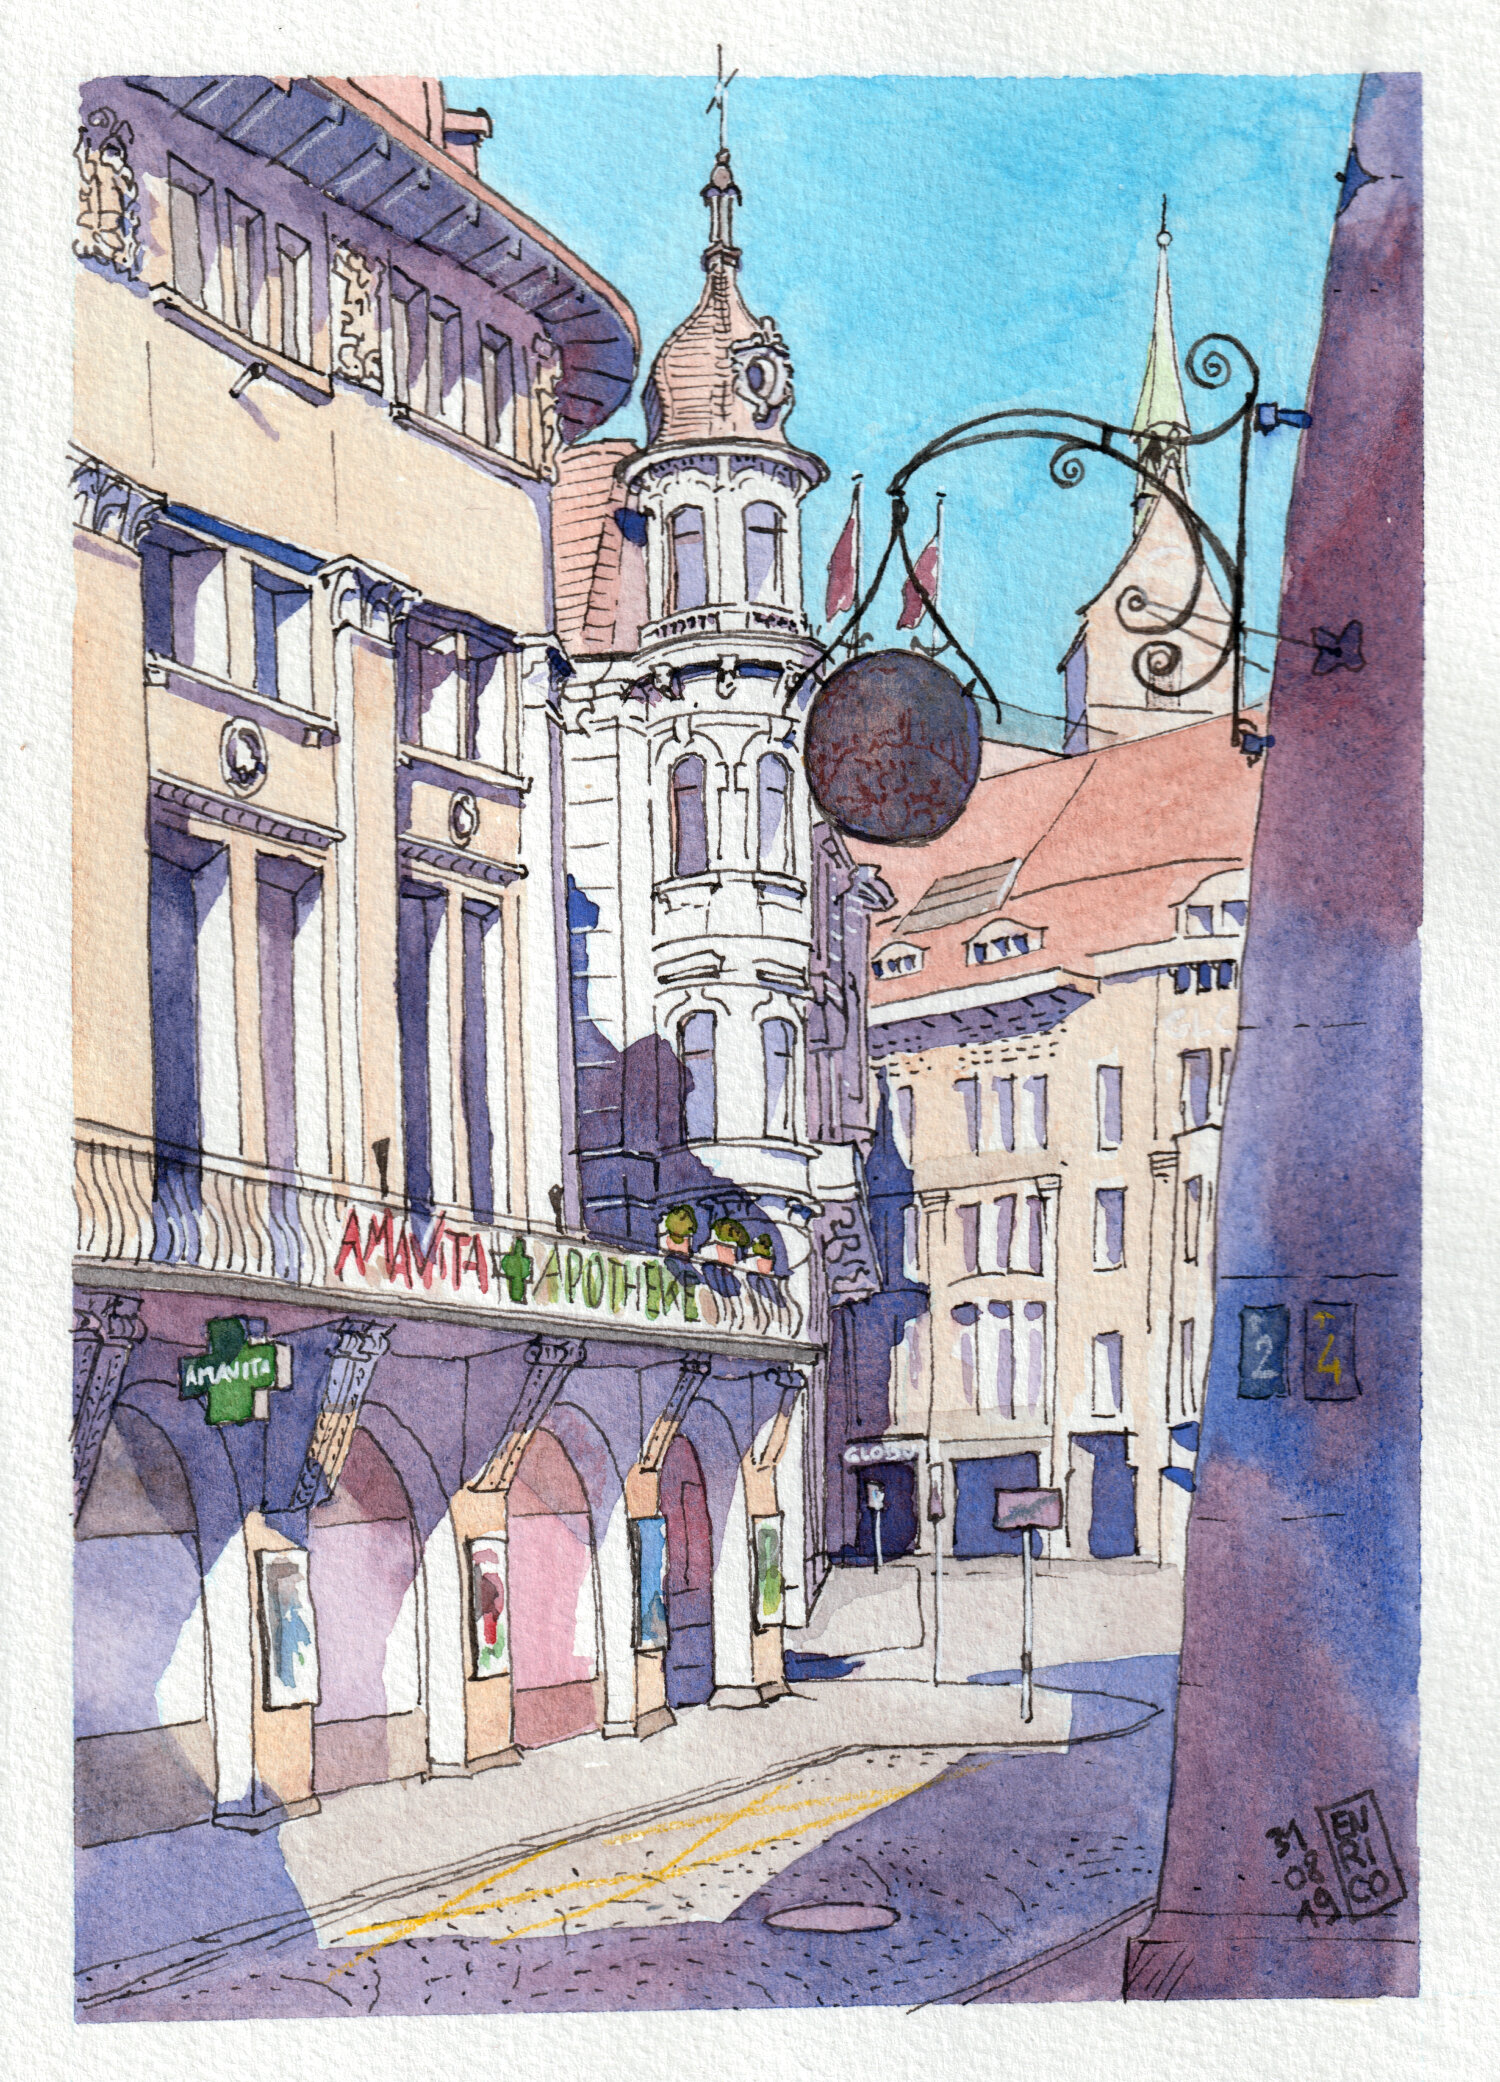 I love the Liberty-style buildings around Marktplatz, but I am too shy to sit and draw in the middle of the square. So I found an hidden corner and sketched one of the entrances of the square.